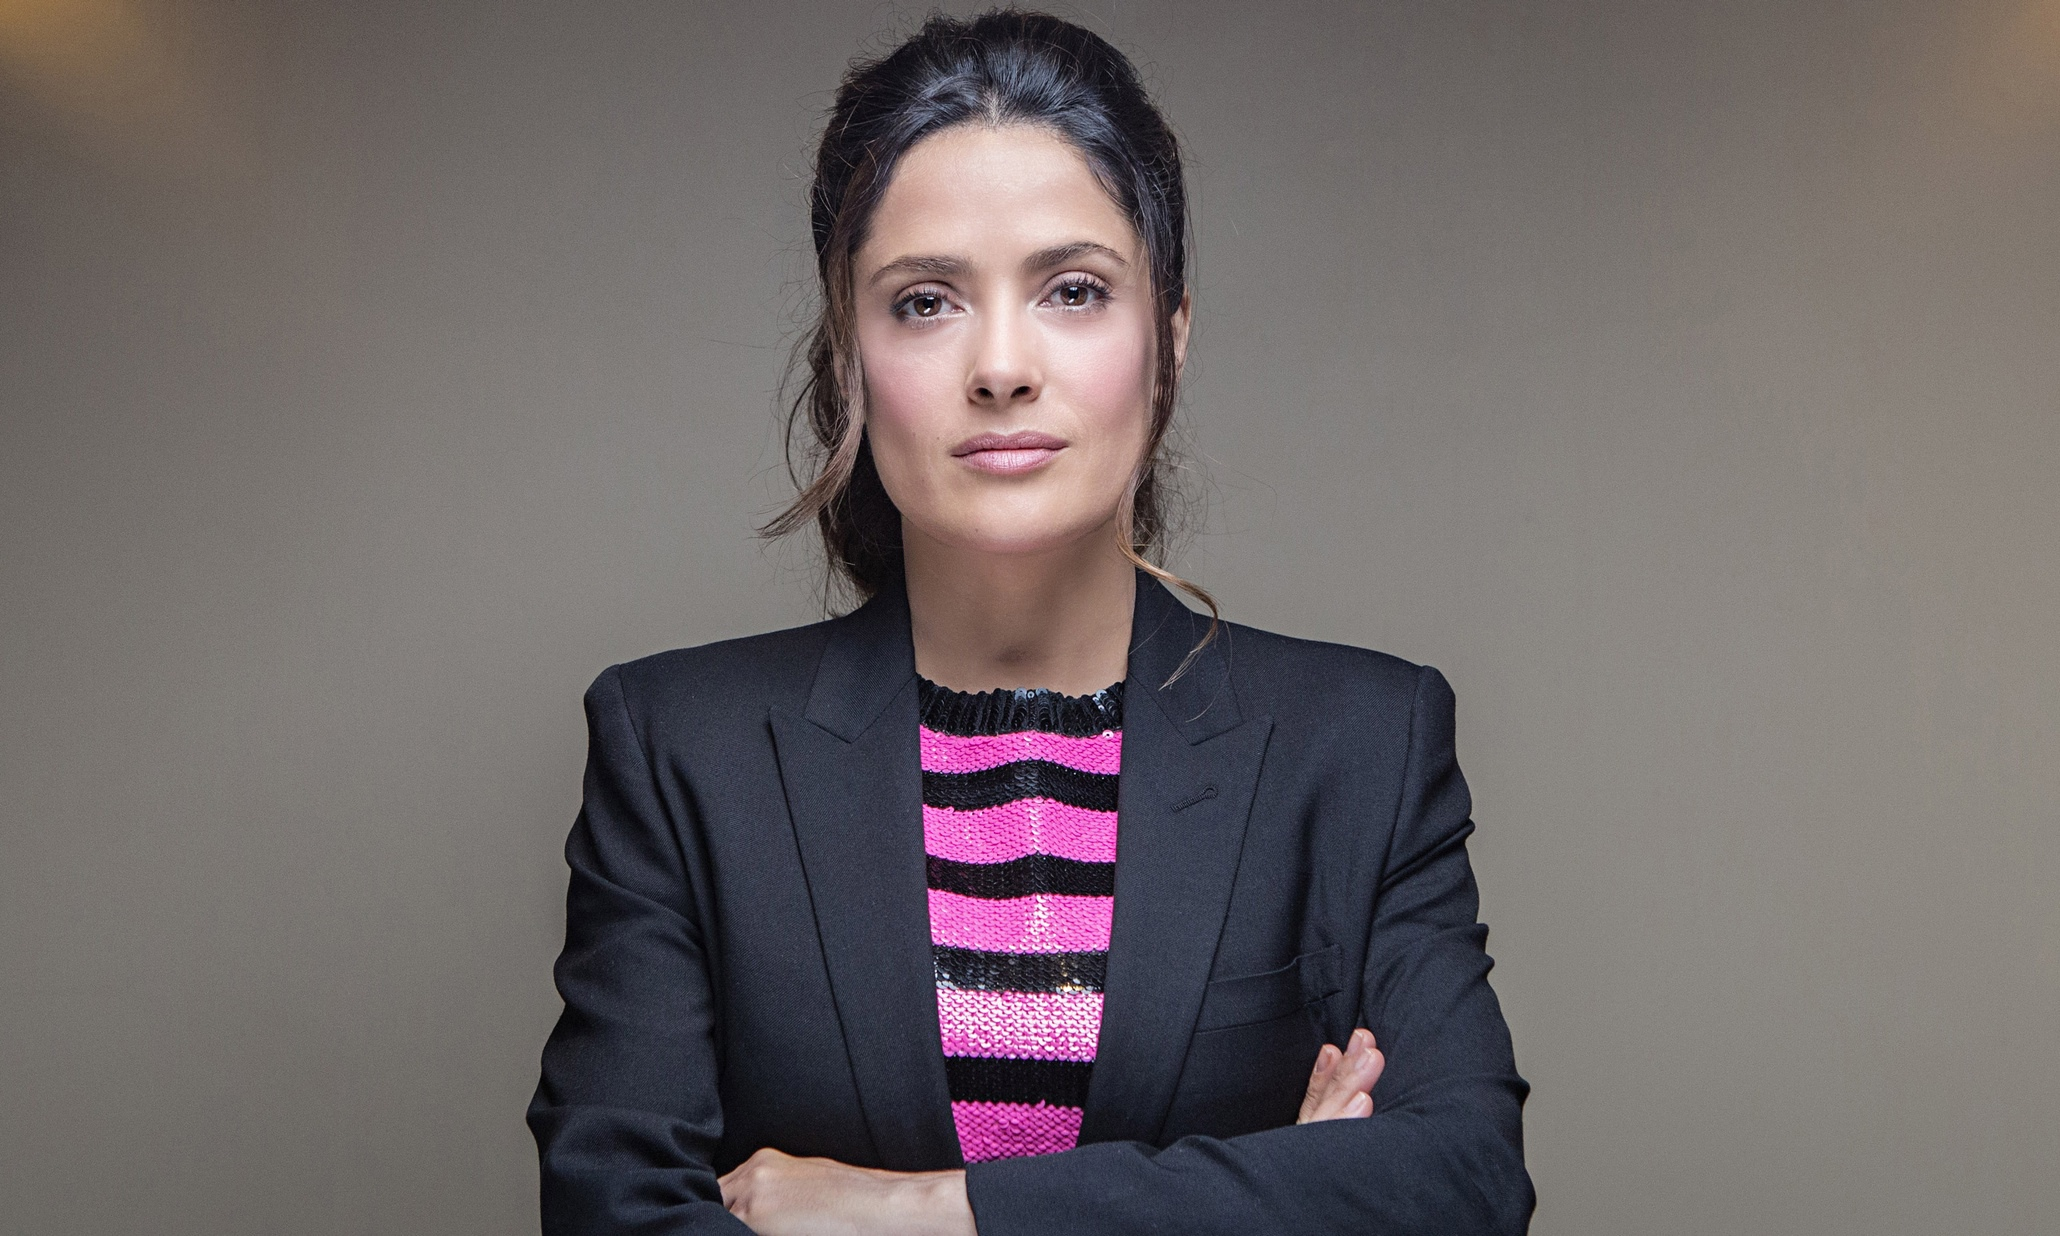 Salma Hayek drops serious wisdom about what it will take for women to change Hollywood